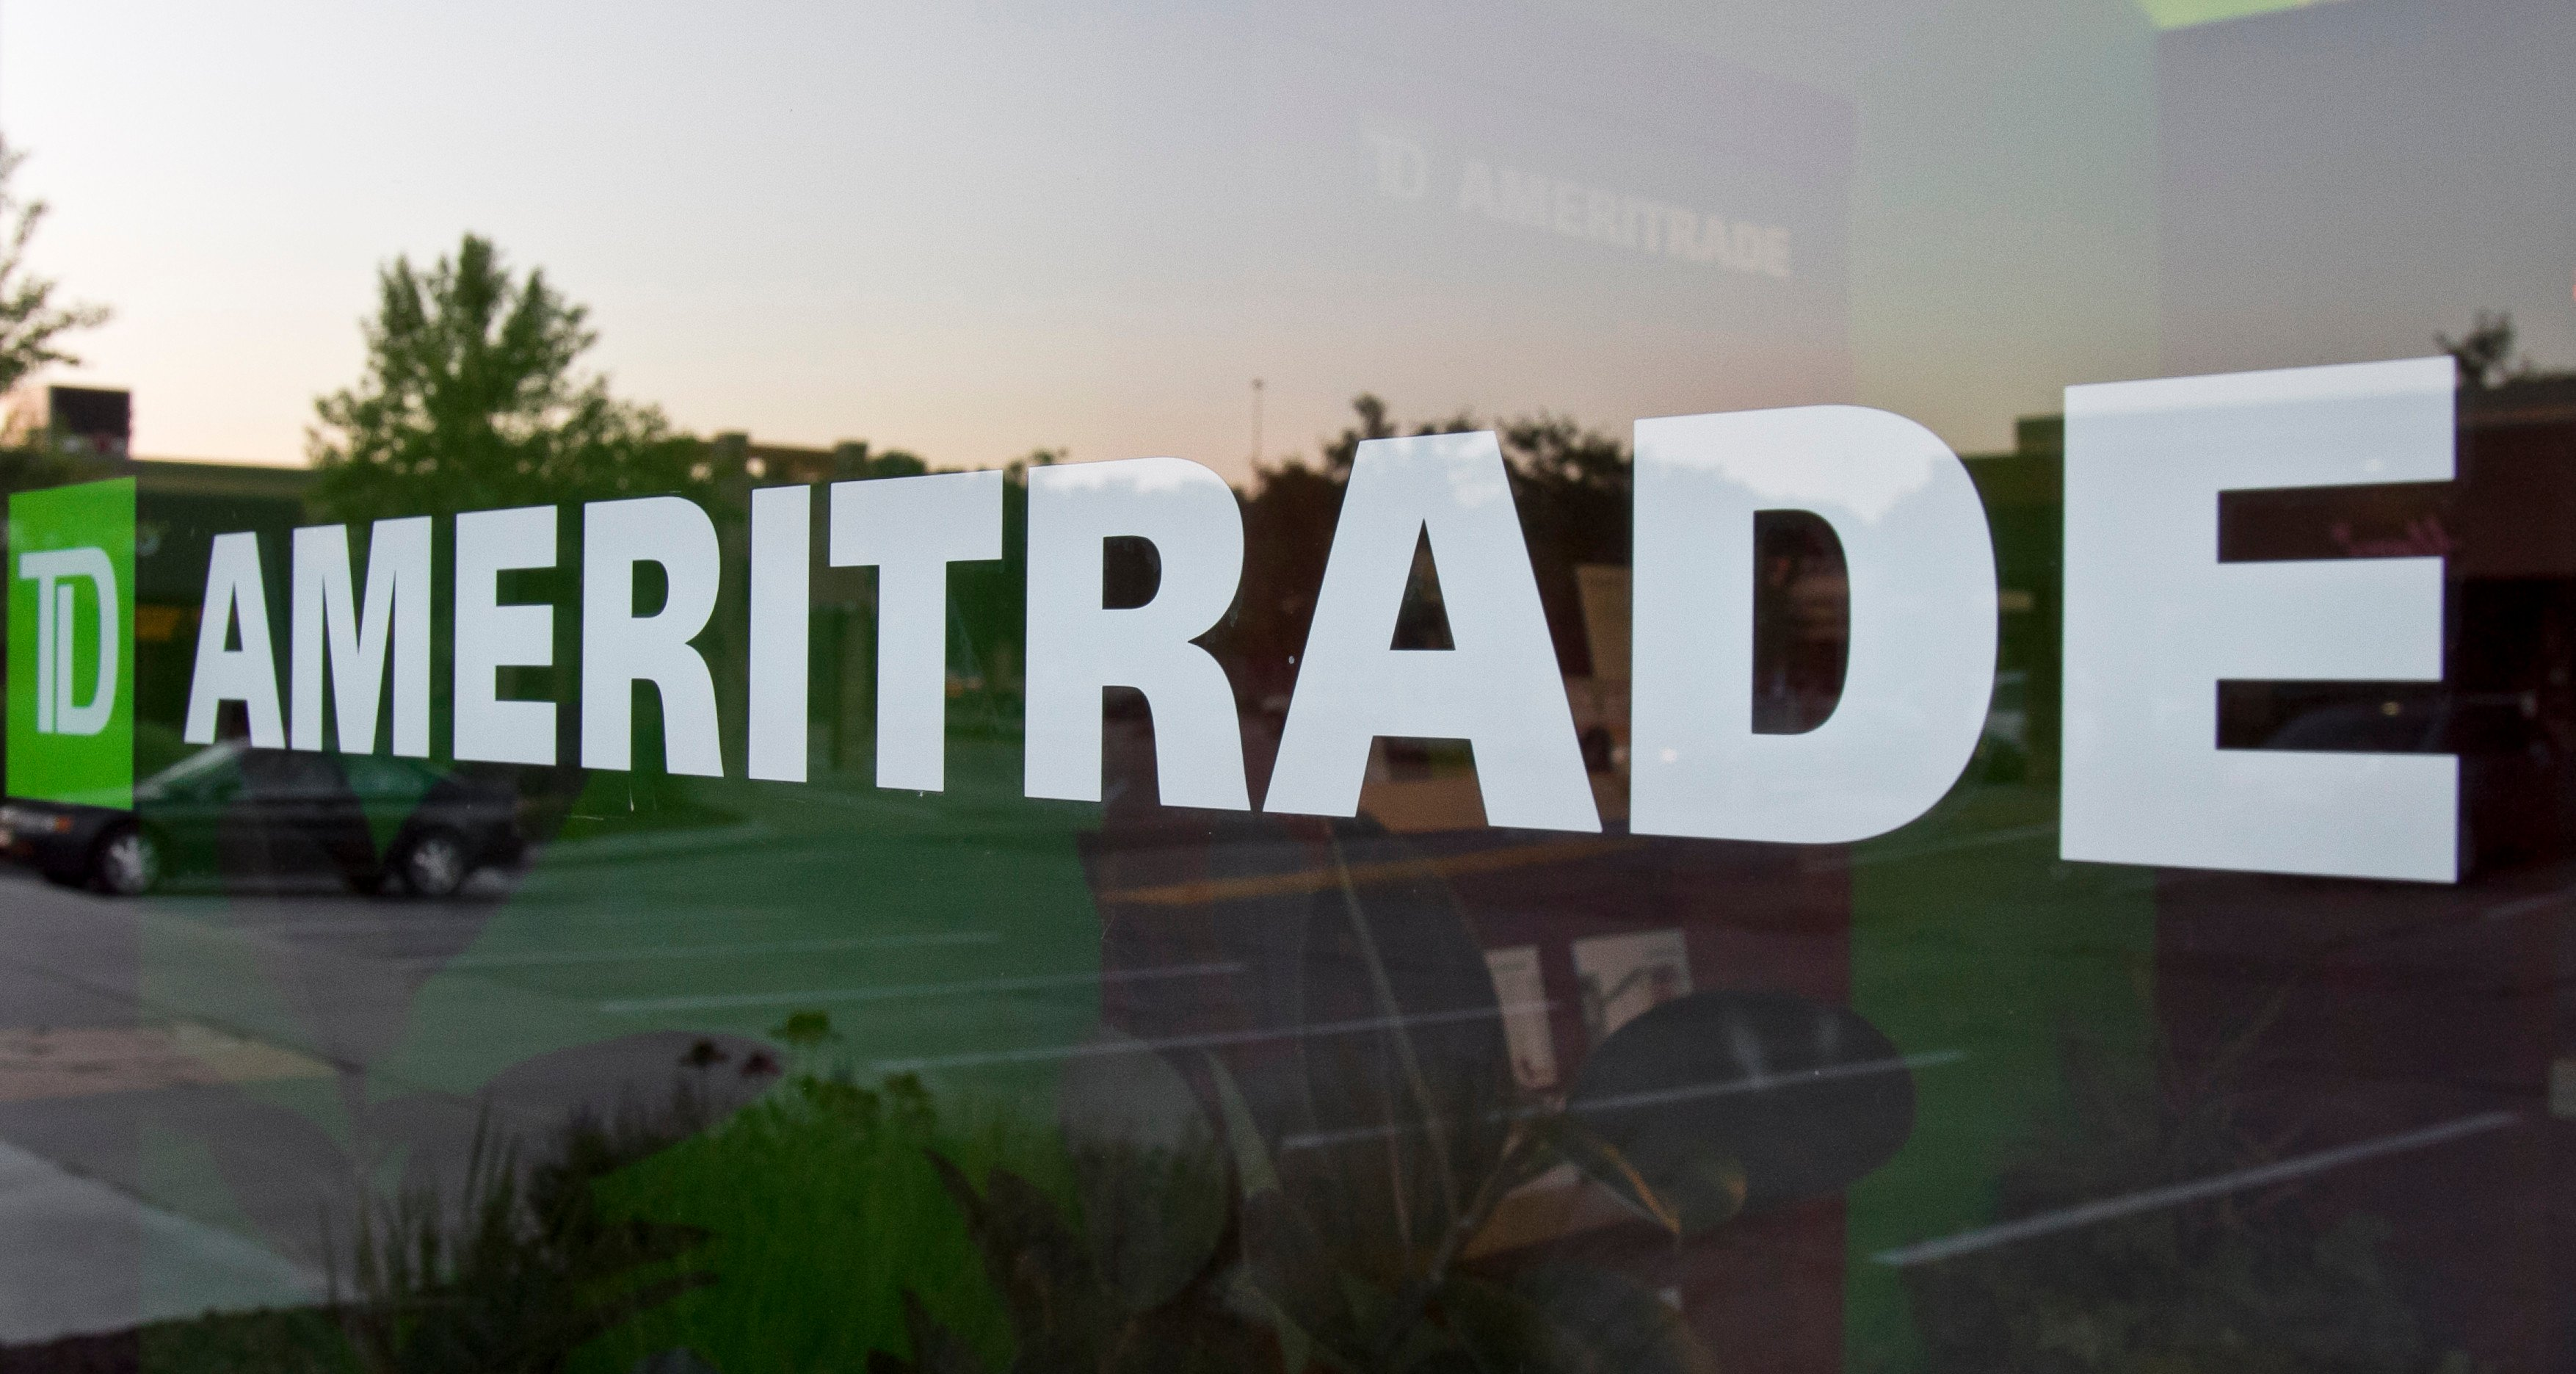 TD Ameritrade to buy Scottrade in $4B cash-and-stock deal